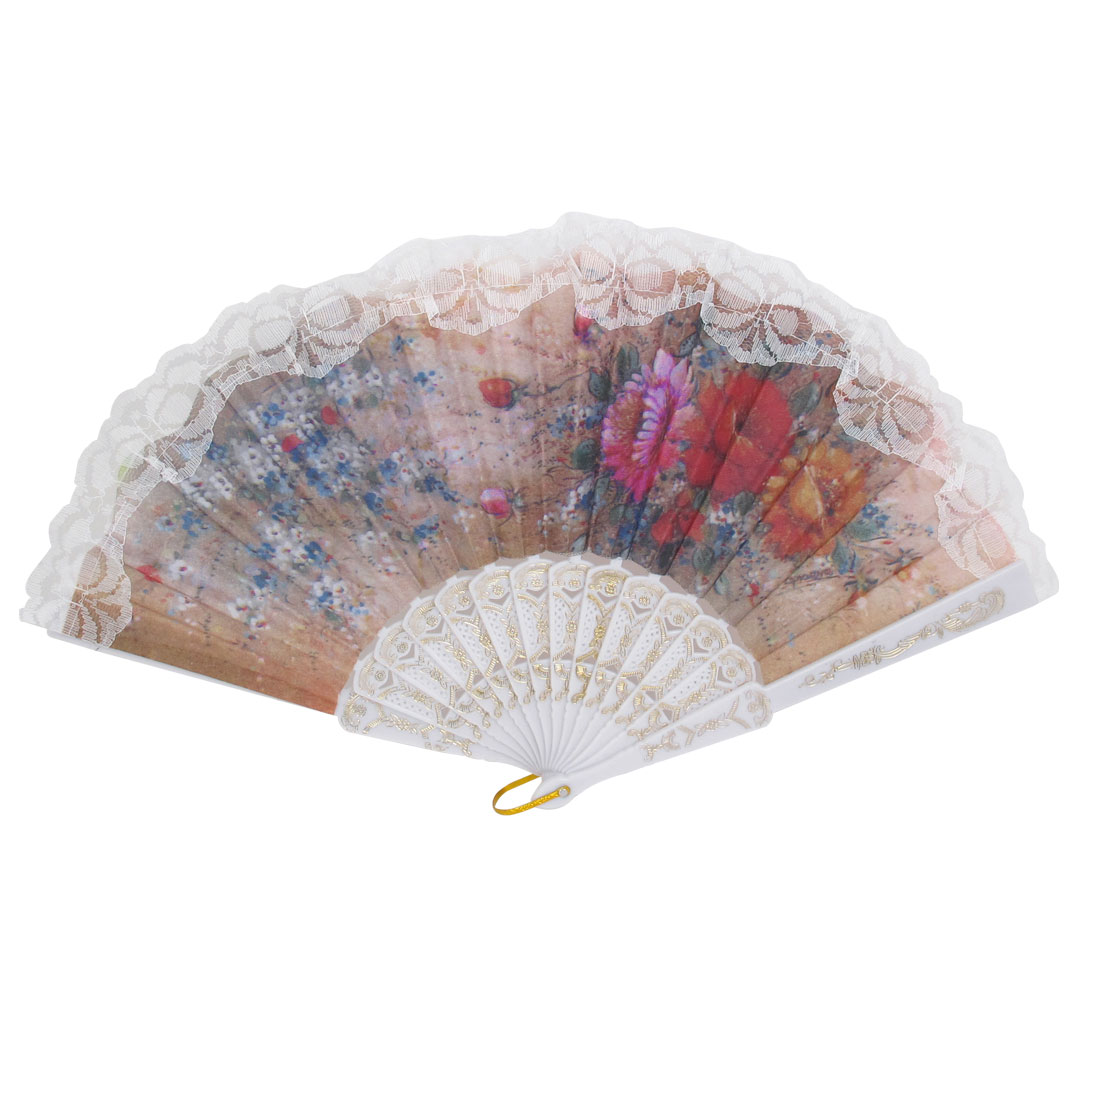 Wedding Party Gift White Plastic Frame Lace Detailing Flower Print Folding Hand Fan